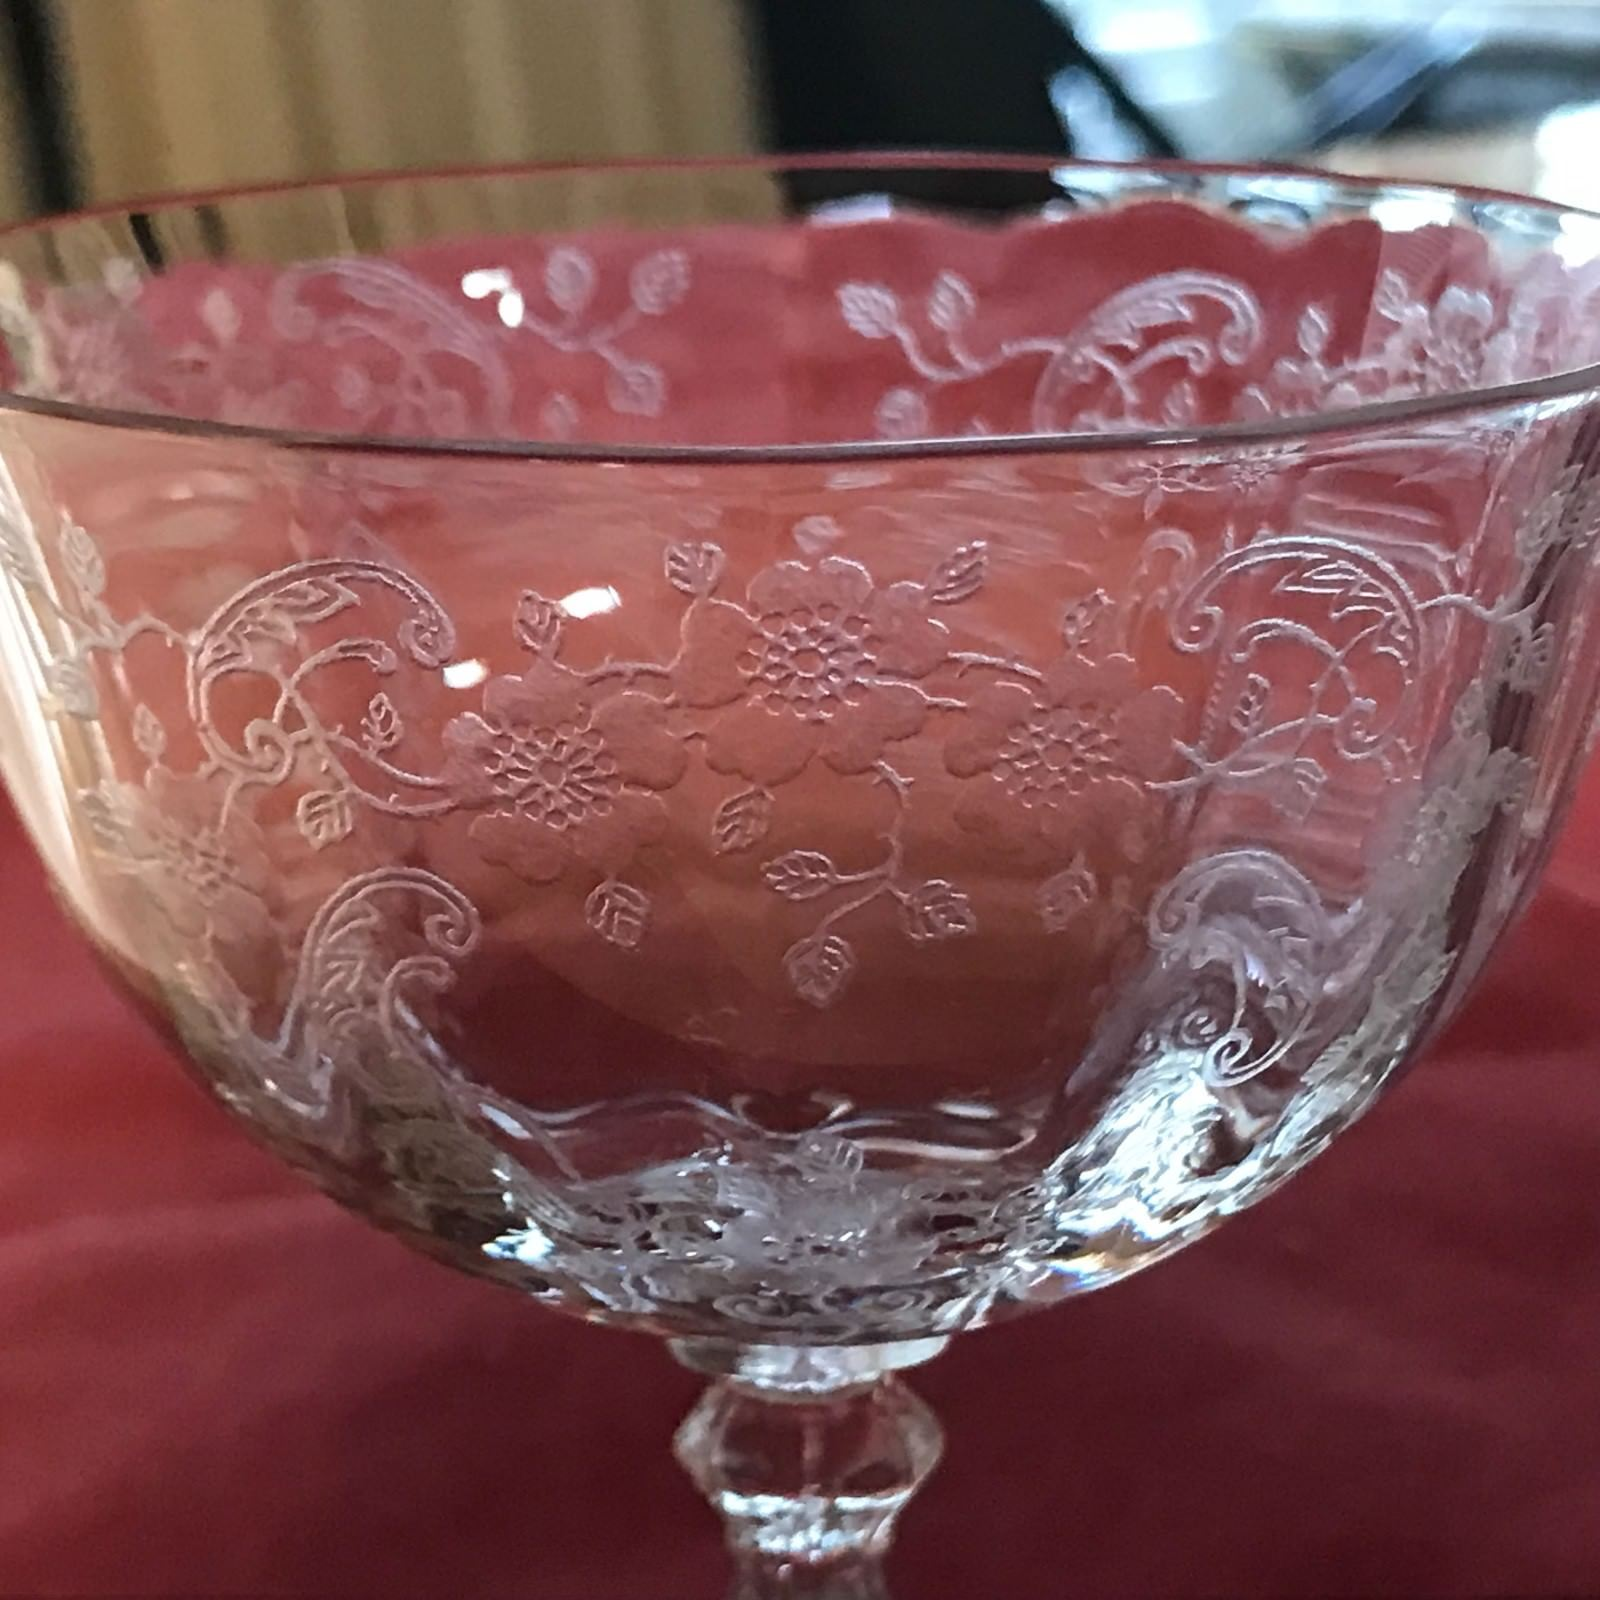 Primary image for Fostoria MEADOW ROSE Goblet Clear 6 oz Sherbet Champagne Glass Stem 18-261